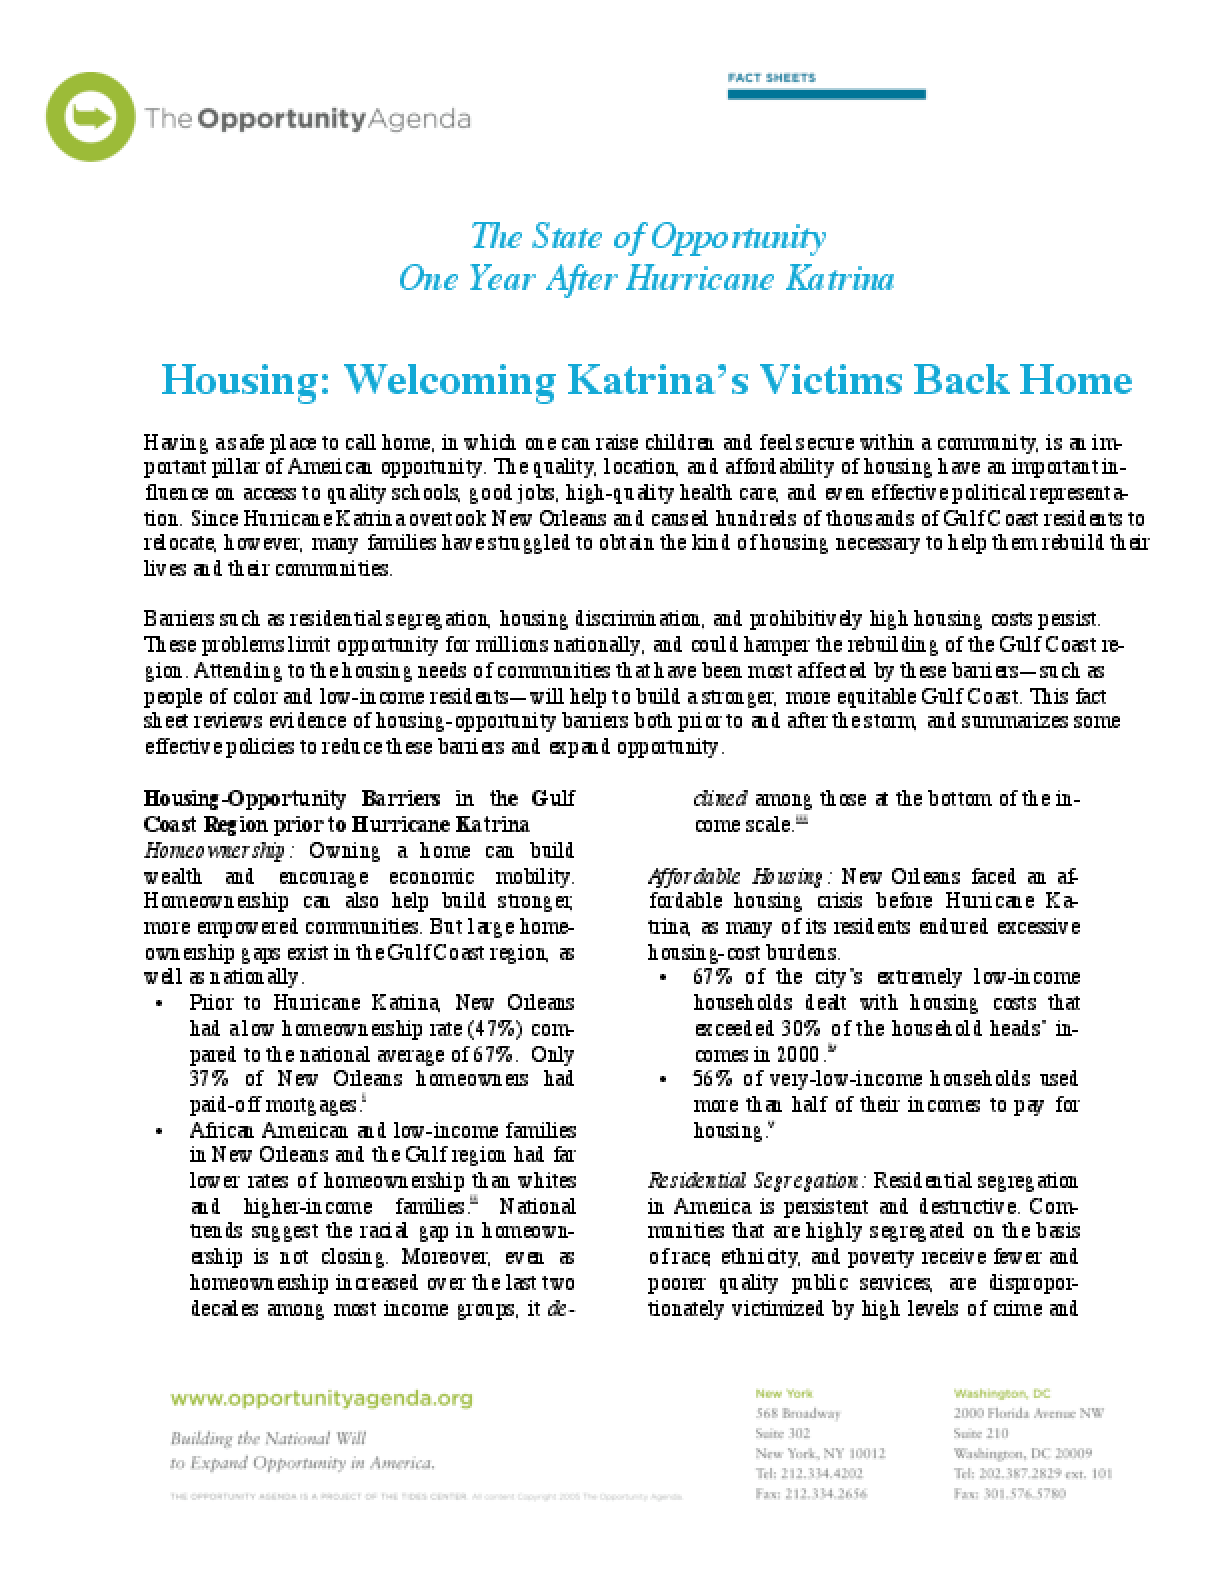 Katrina One Year Later - Housing: Welcoming Katrina's Victims Back Home